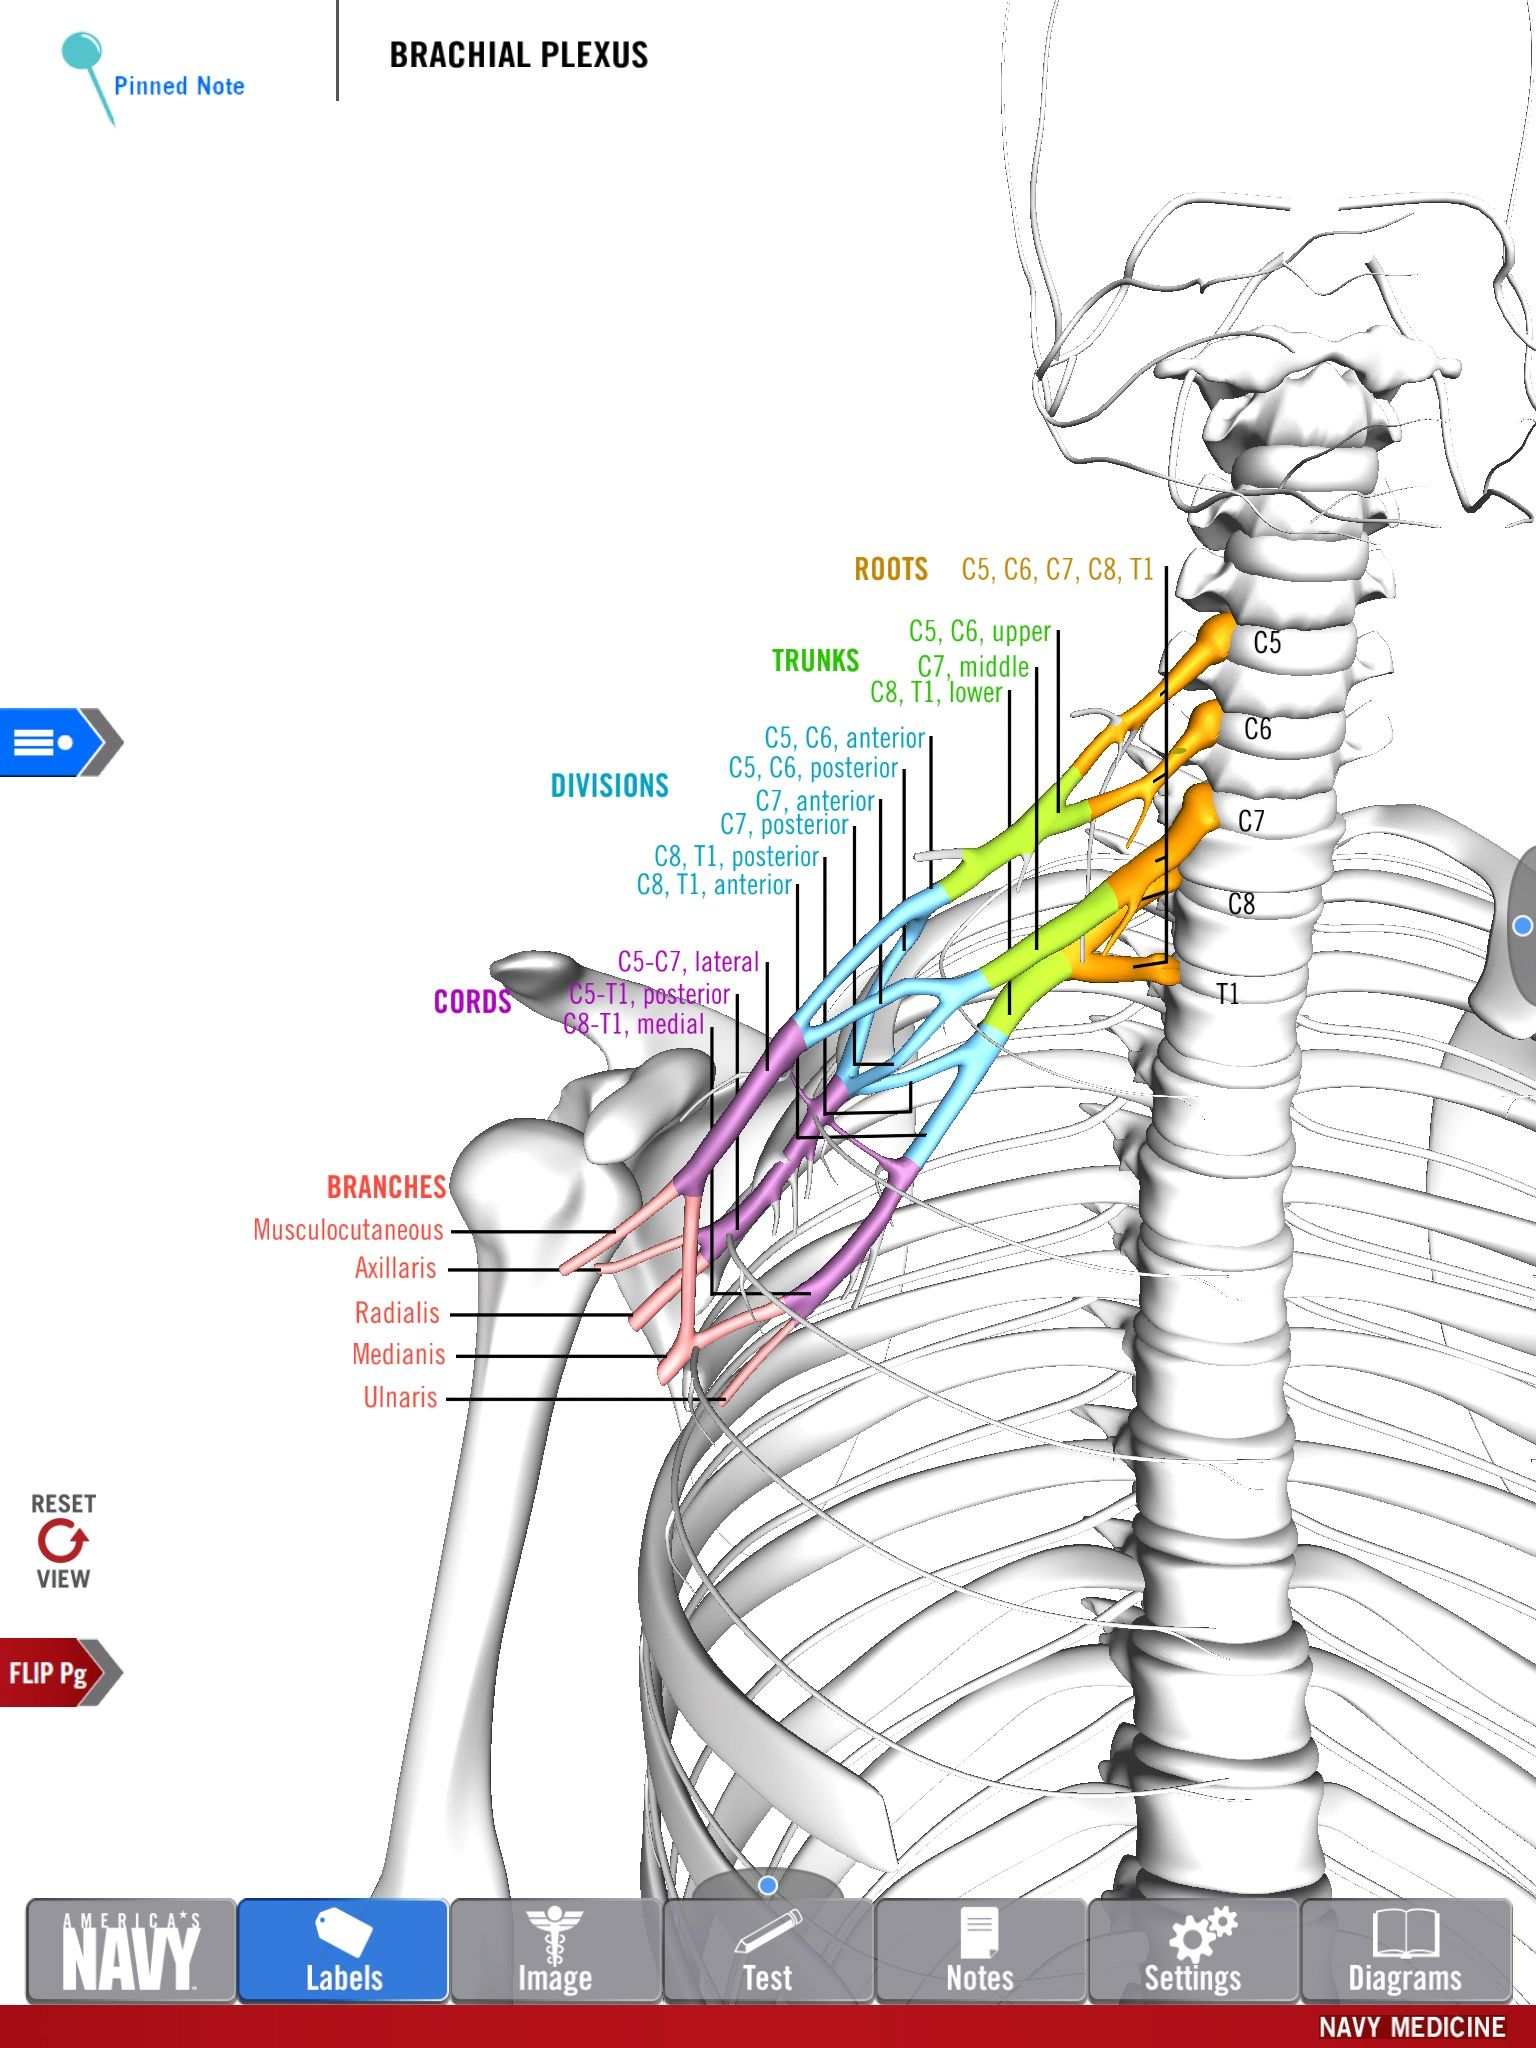 Diagram of the Brachial Plexus from the free Anatomy Study Guide app ...